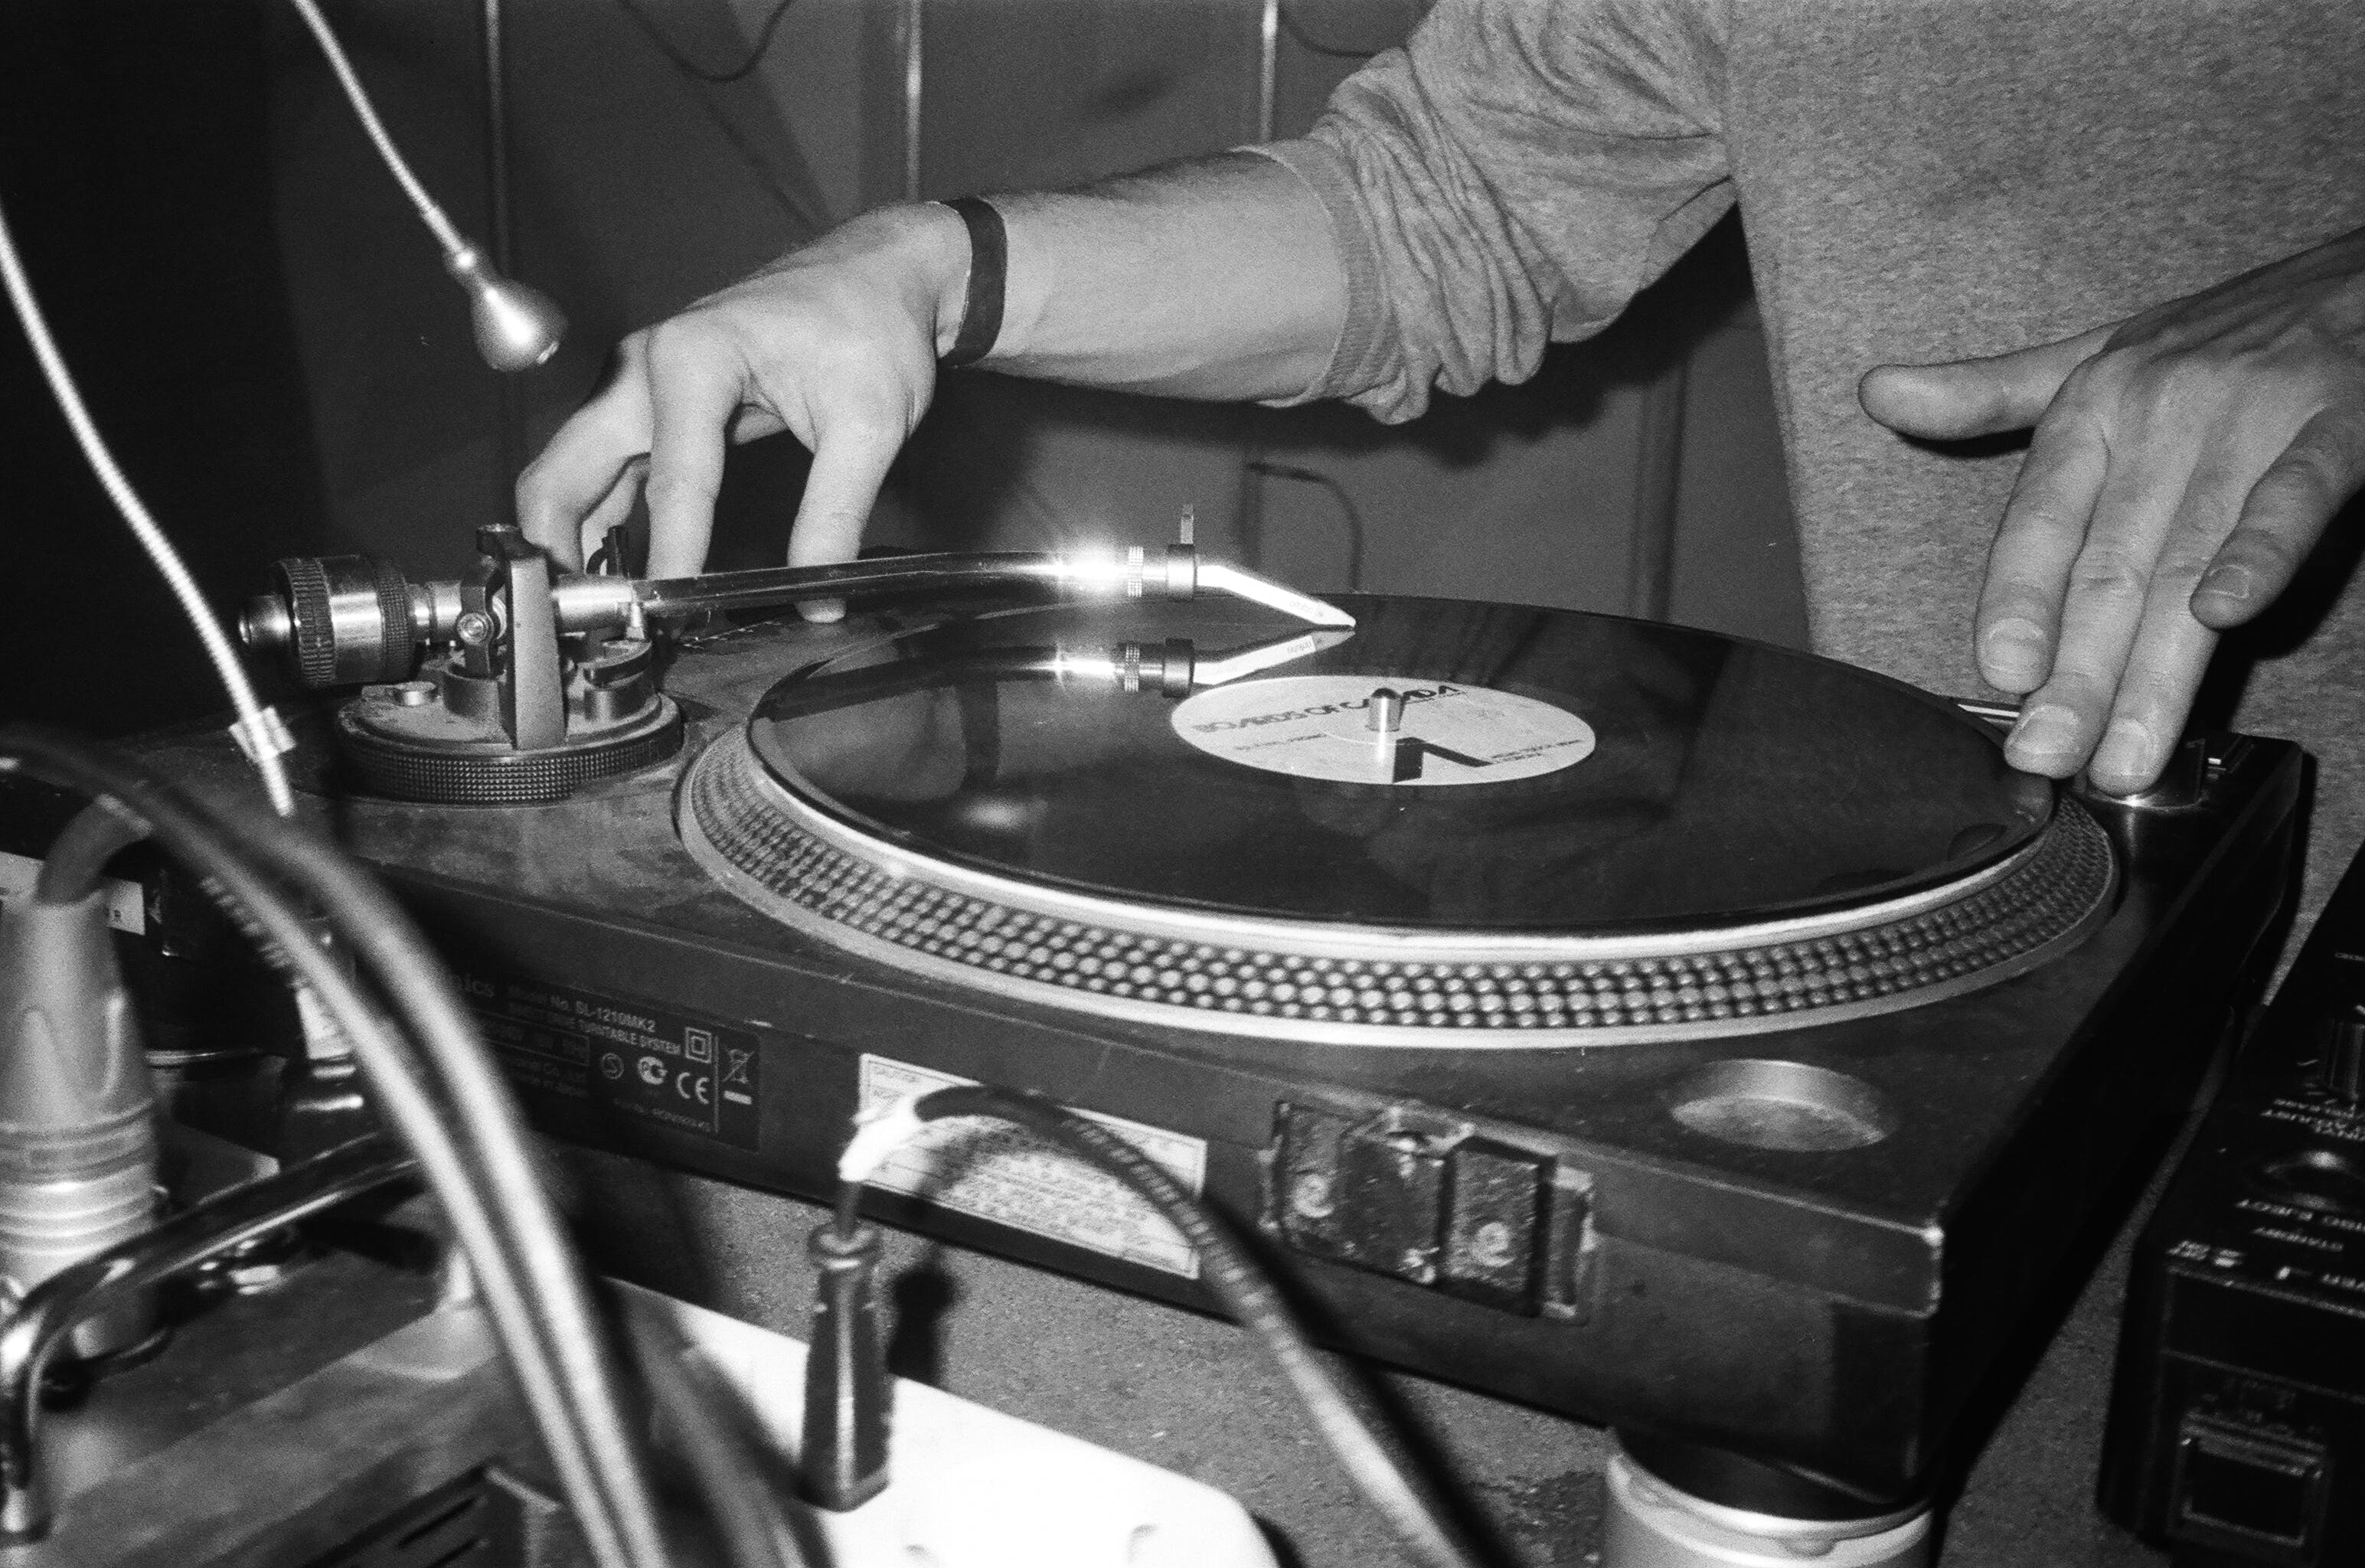 Grayscale Photography of Person Playing Turntable